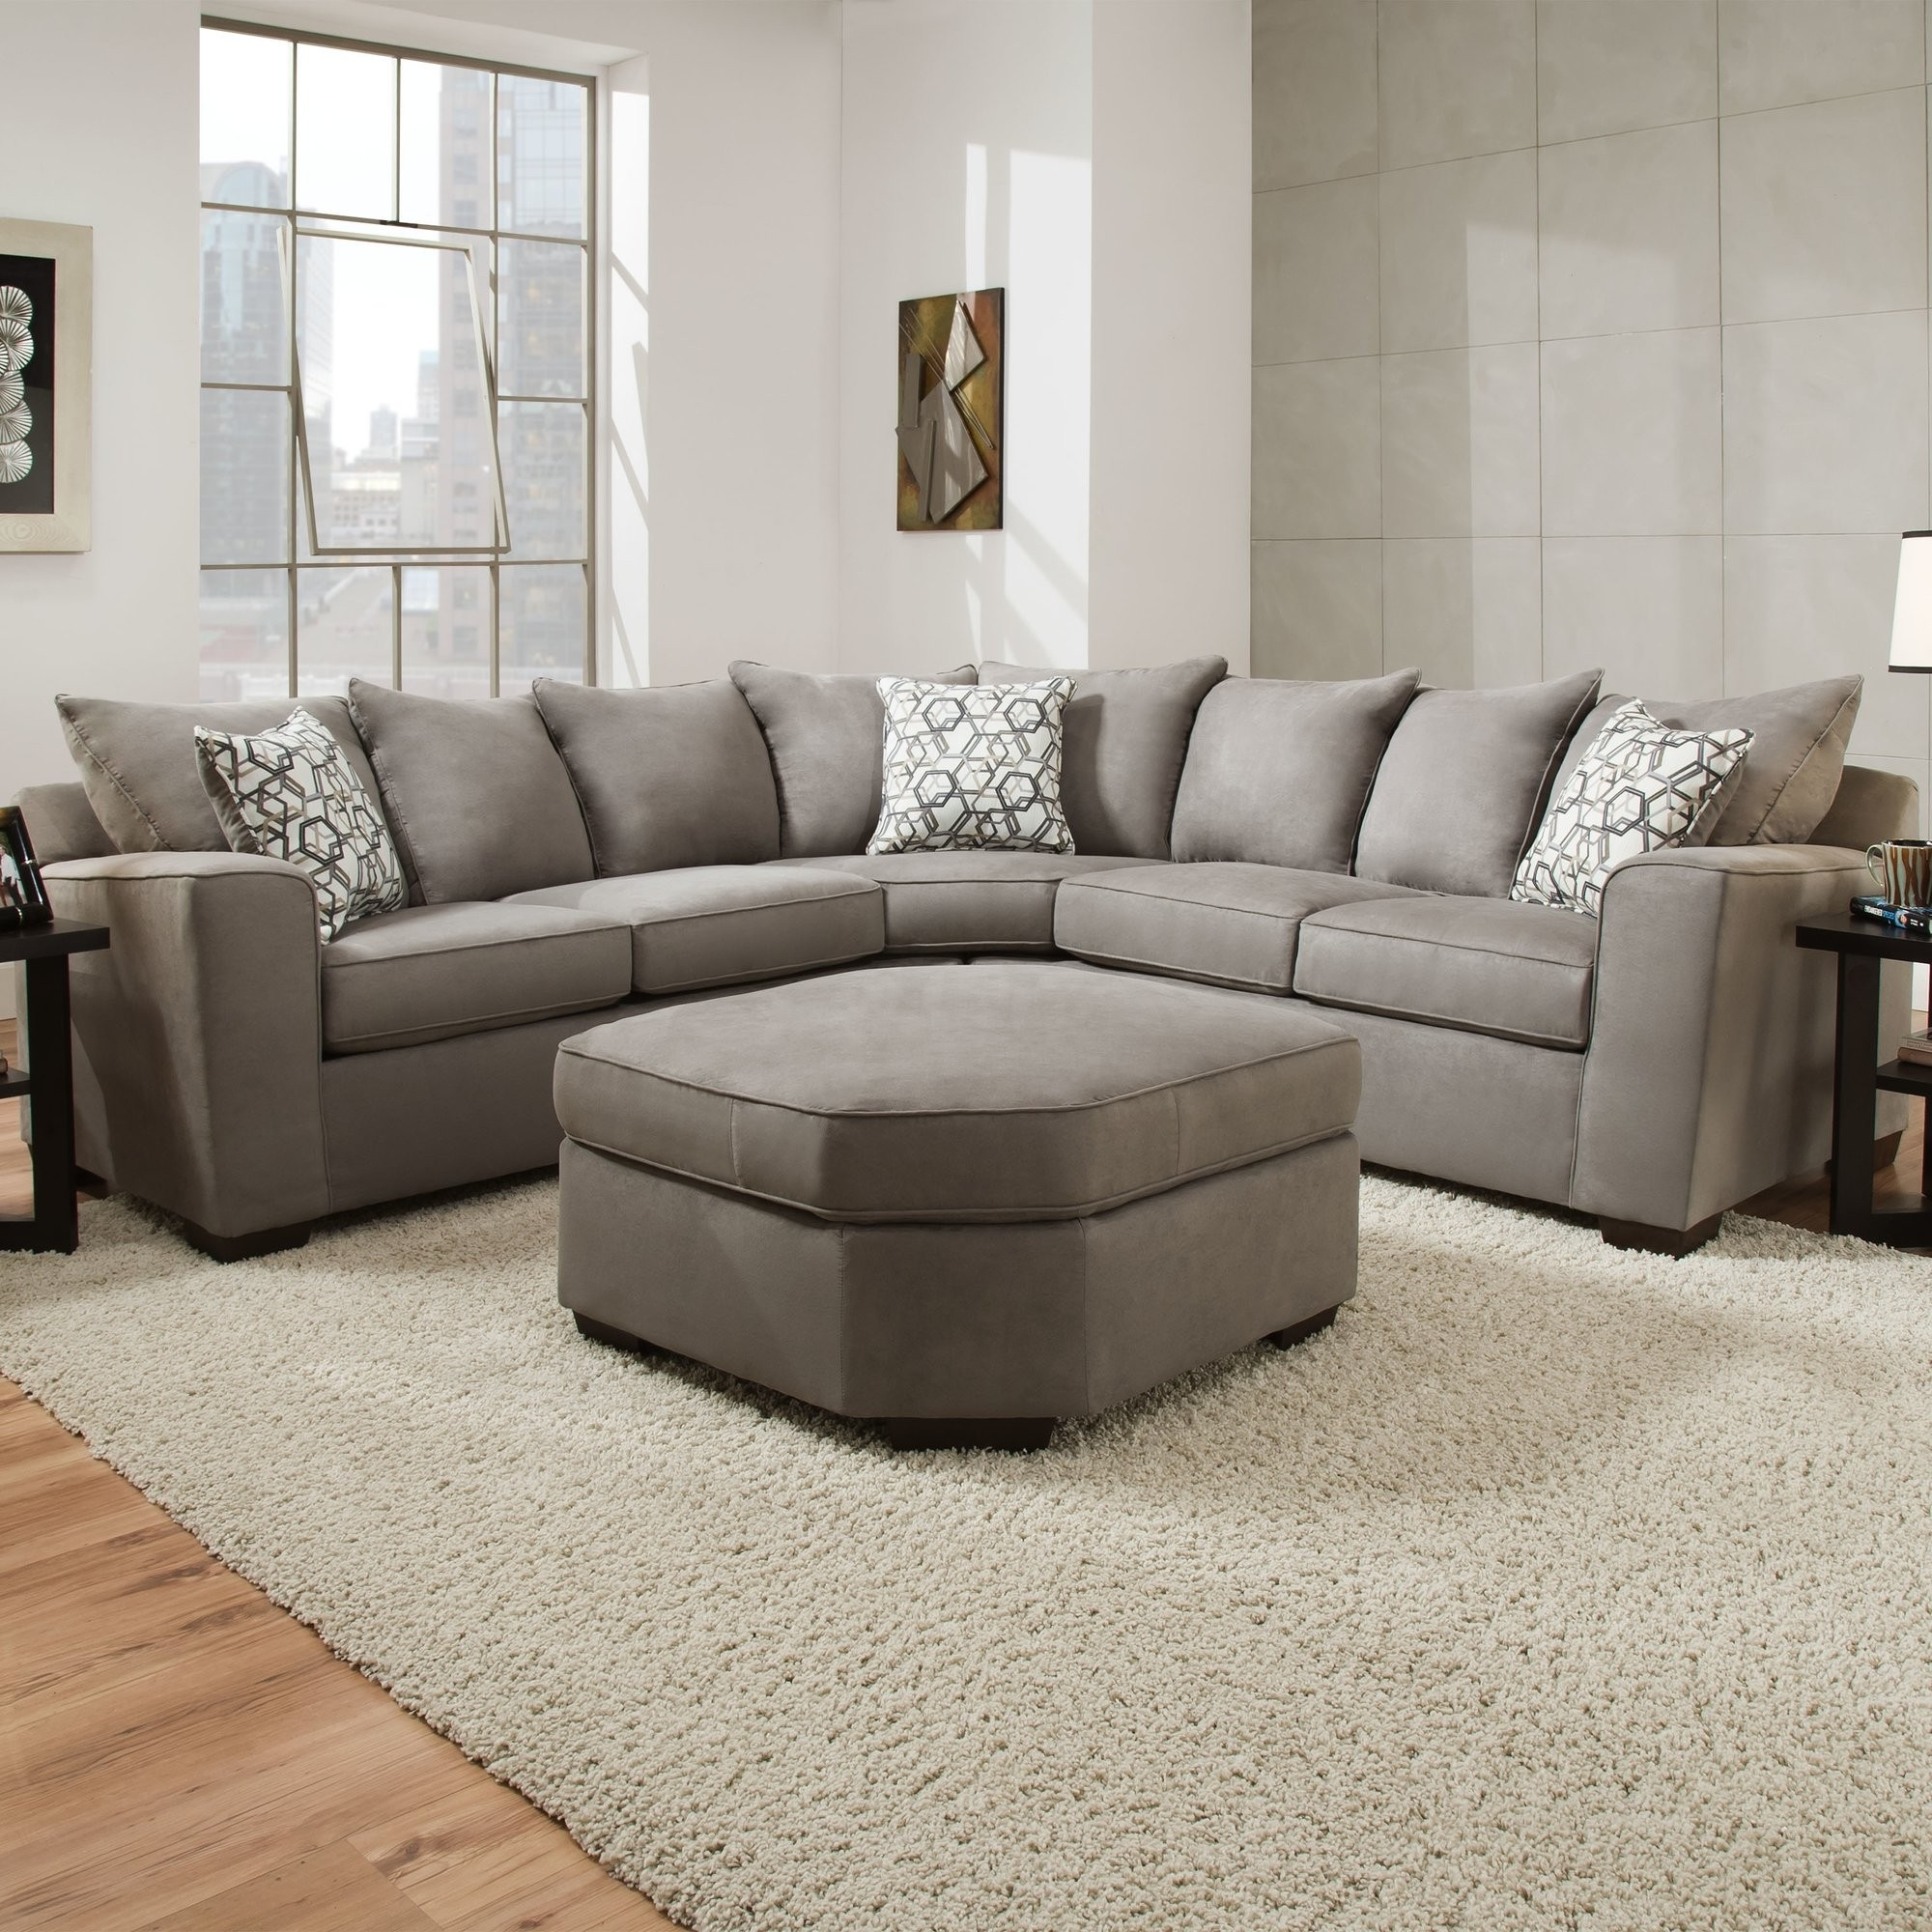 Fresh Simmons Sectional Sofa Joss And Main – Buildsimplehome Intended For Joss And Main Sectional Sofas (View 2 of 10)